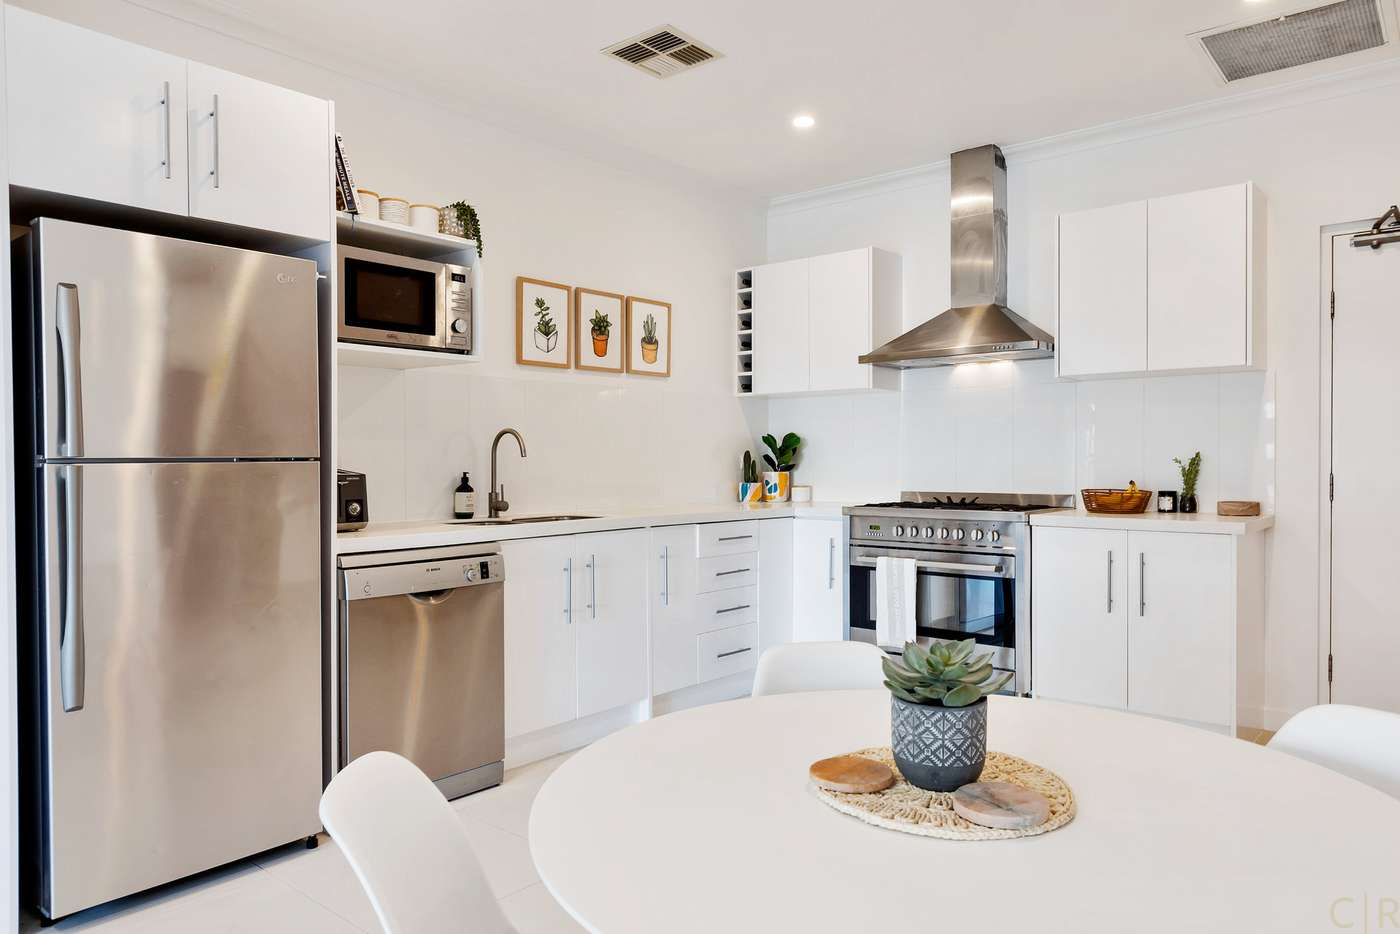 Main view of Homely apartment listing, 1102/39 Grenfell Street, Adelaide SA 5000